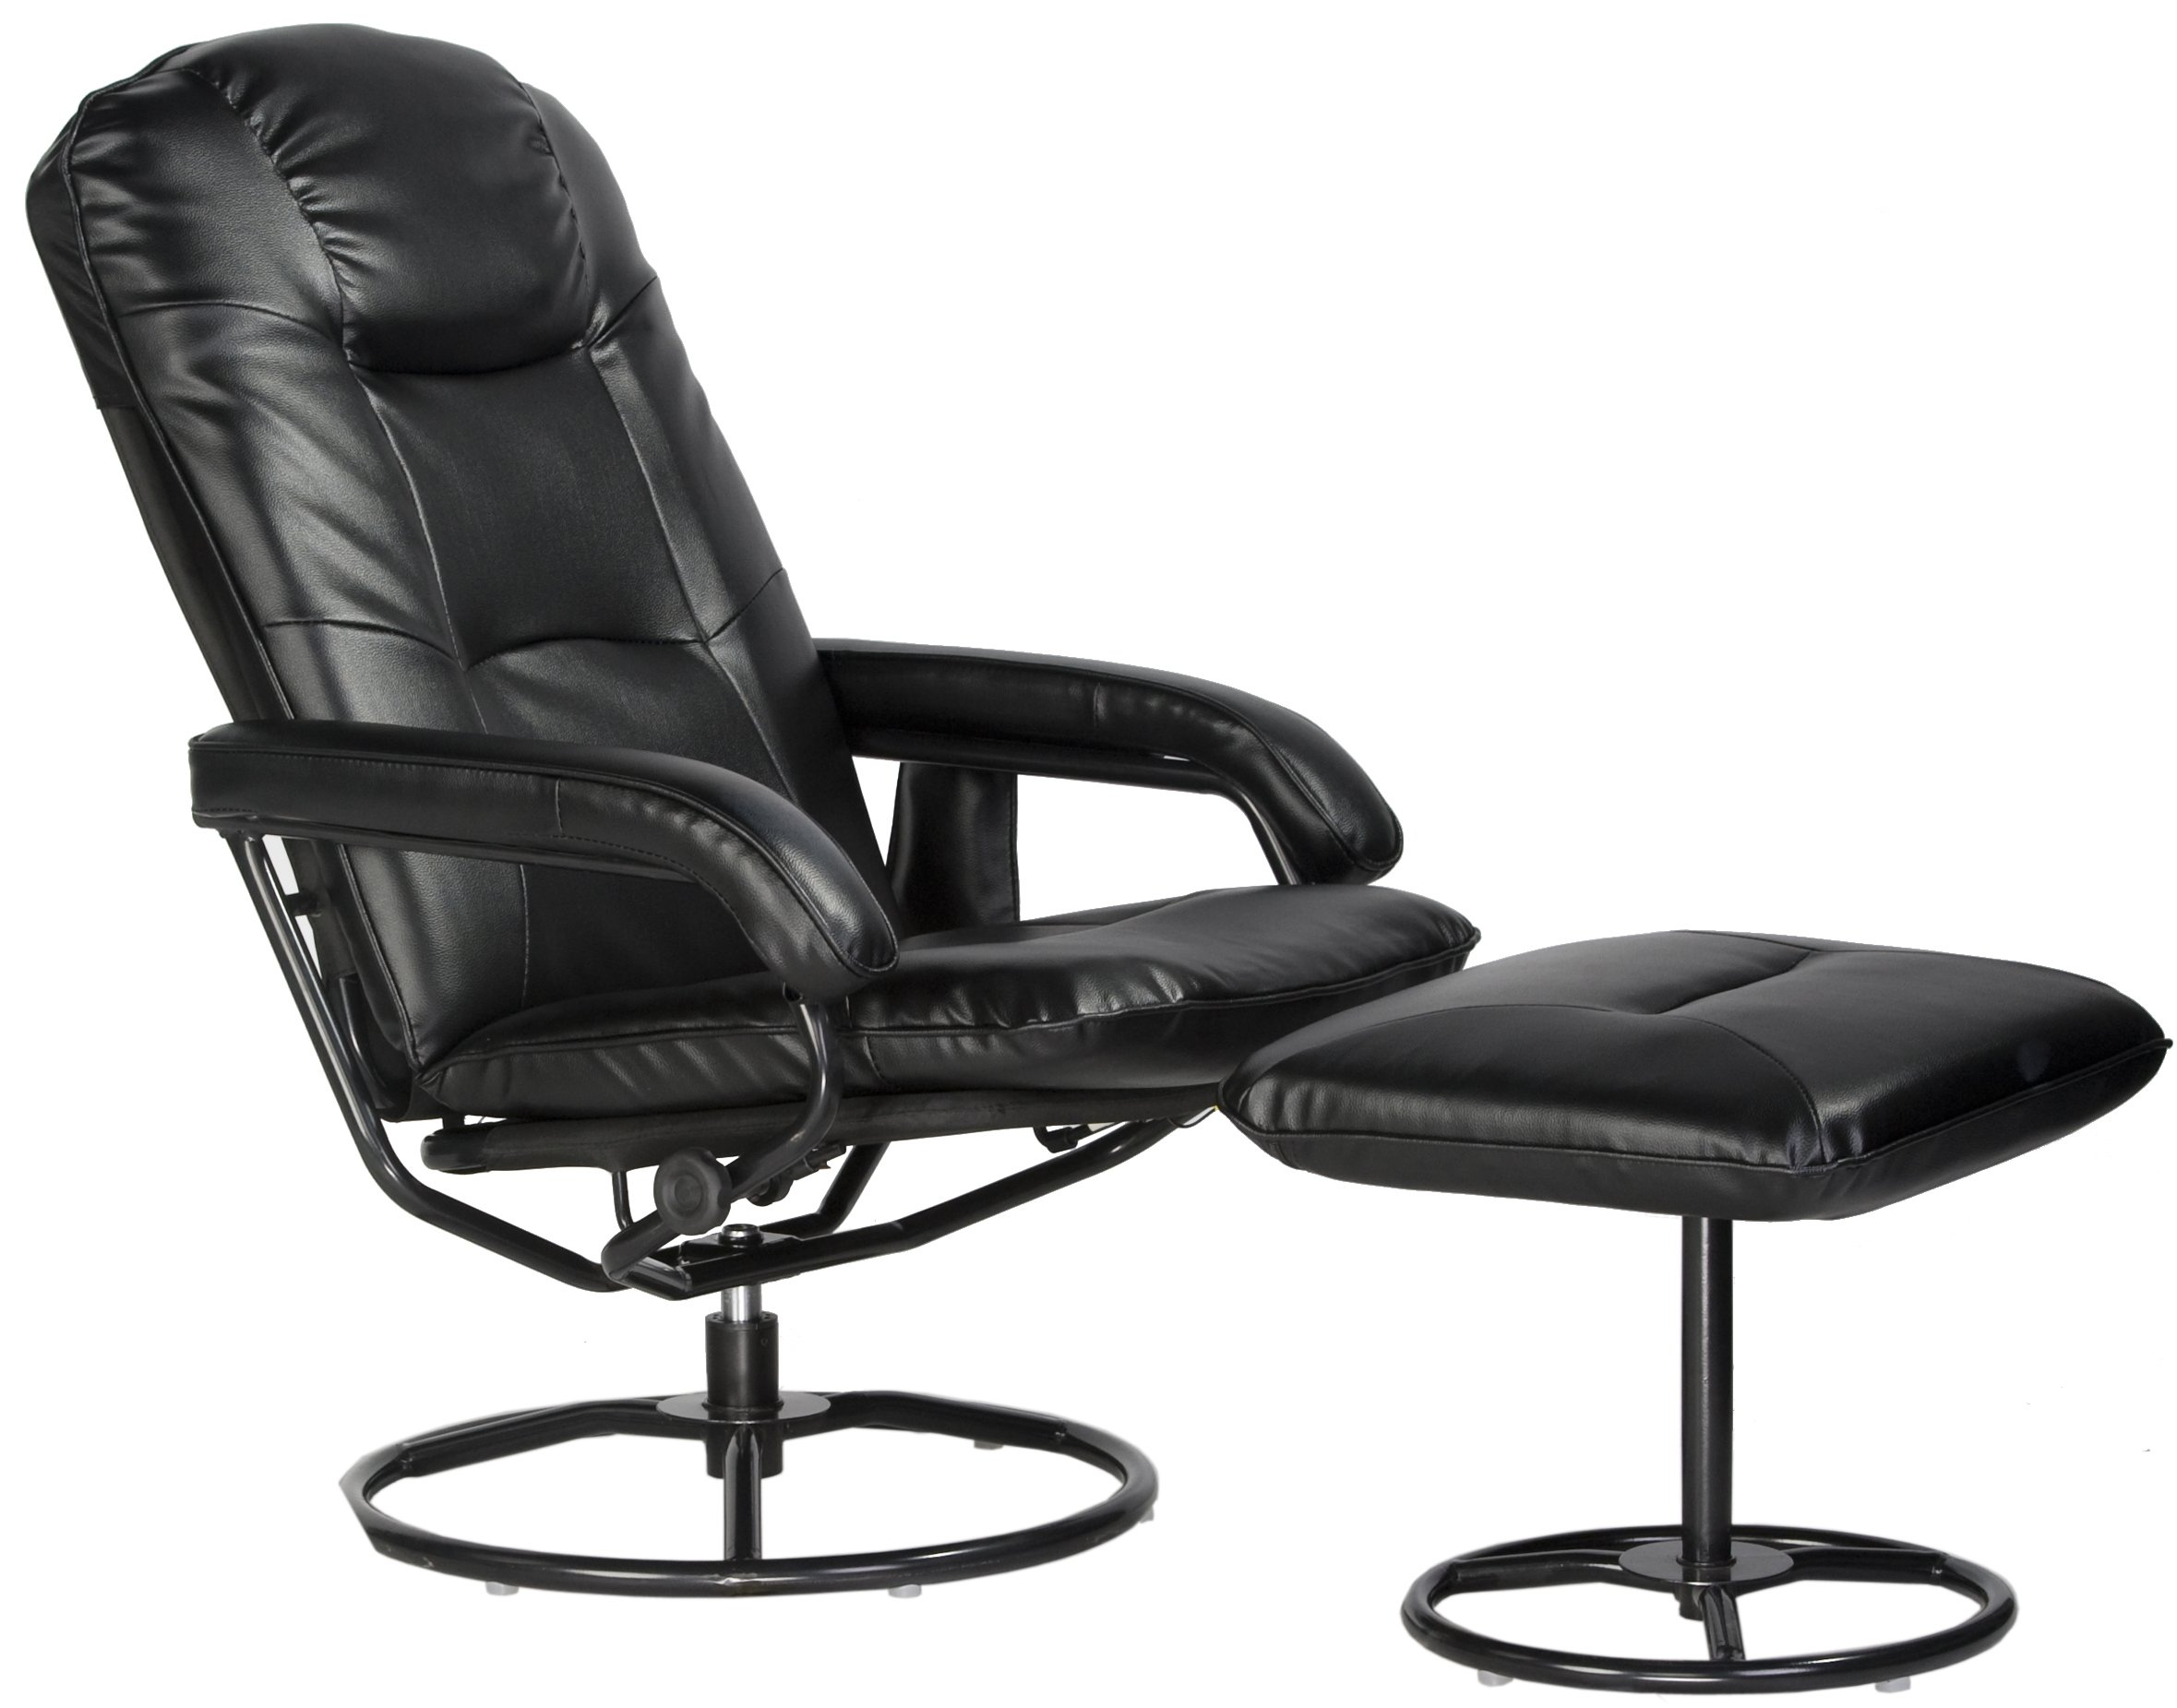 Comfort Products 60-0582 Leisure Recliner Chair with 10-Motor Massage & Heat, Black by Comfort Products (Image #7)